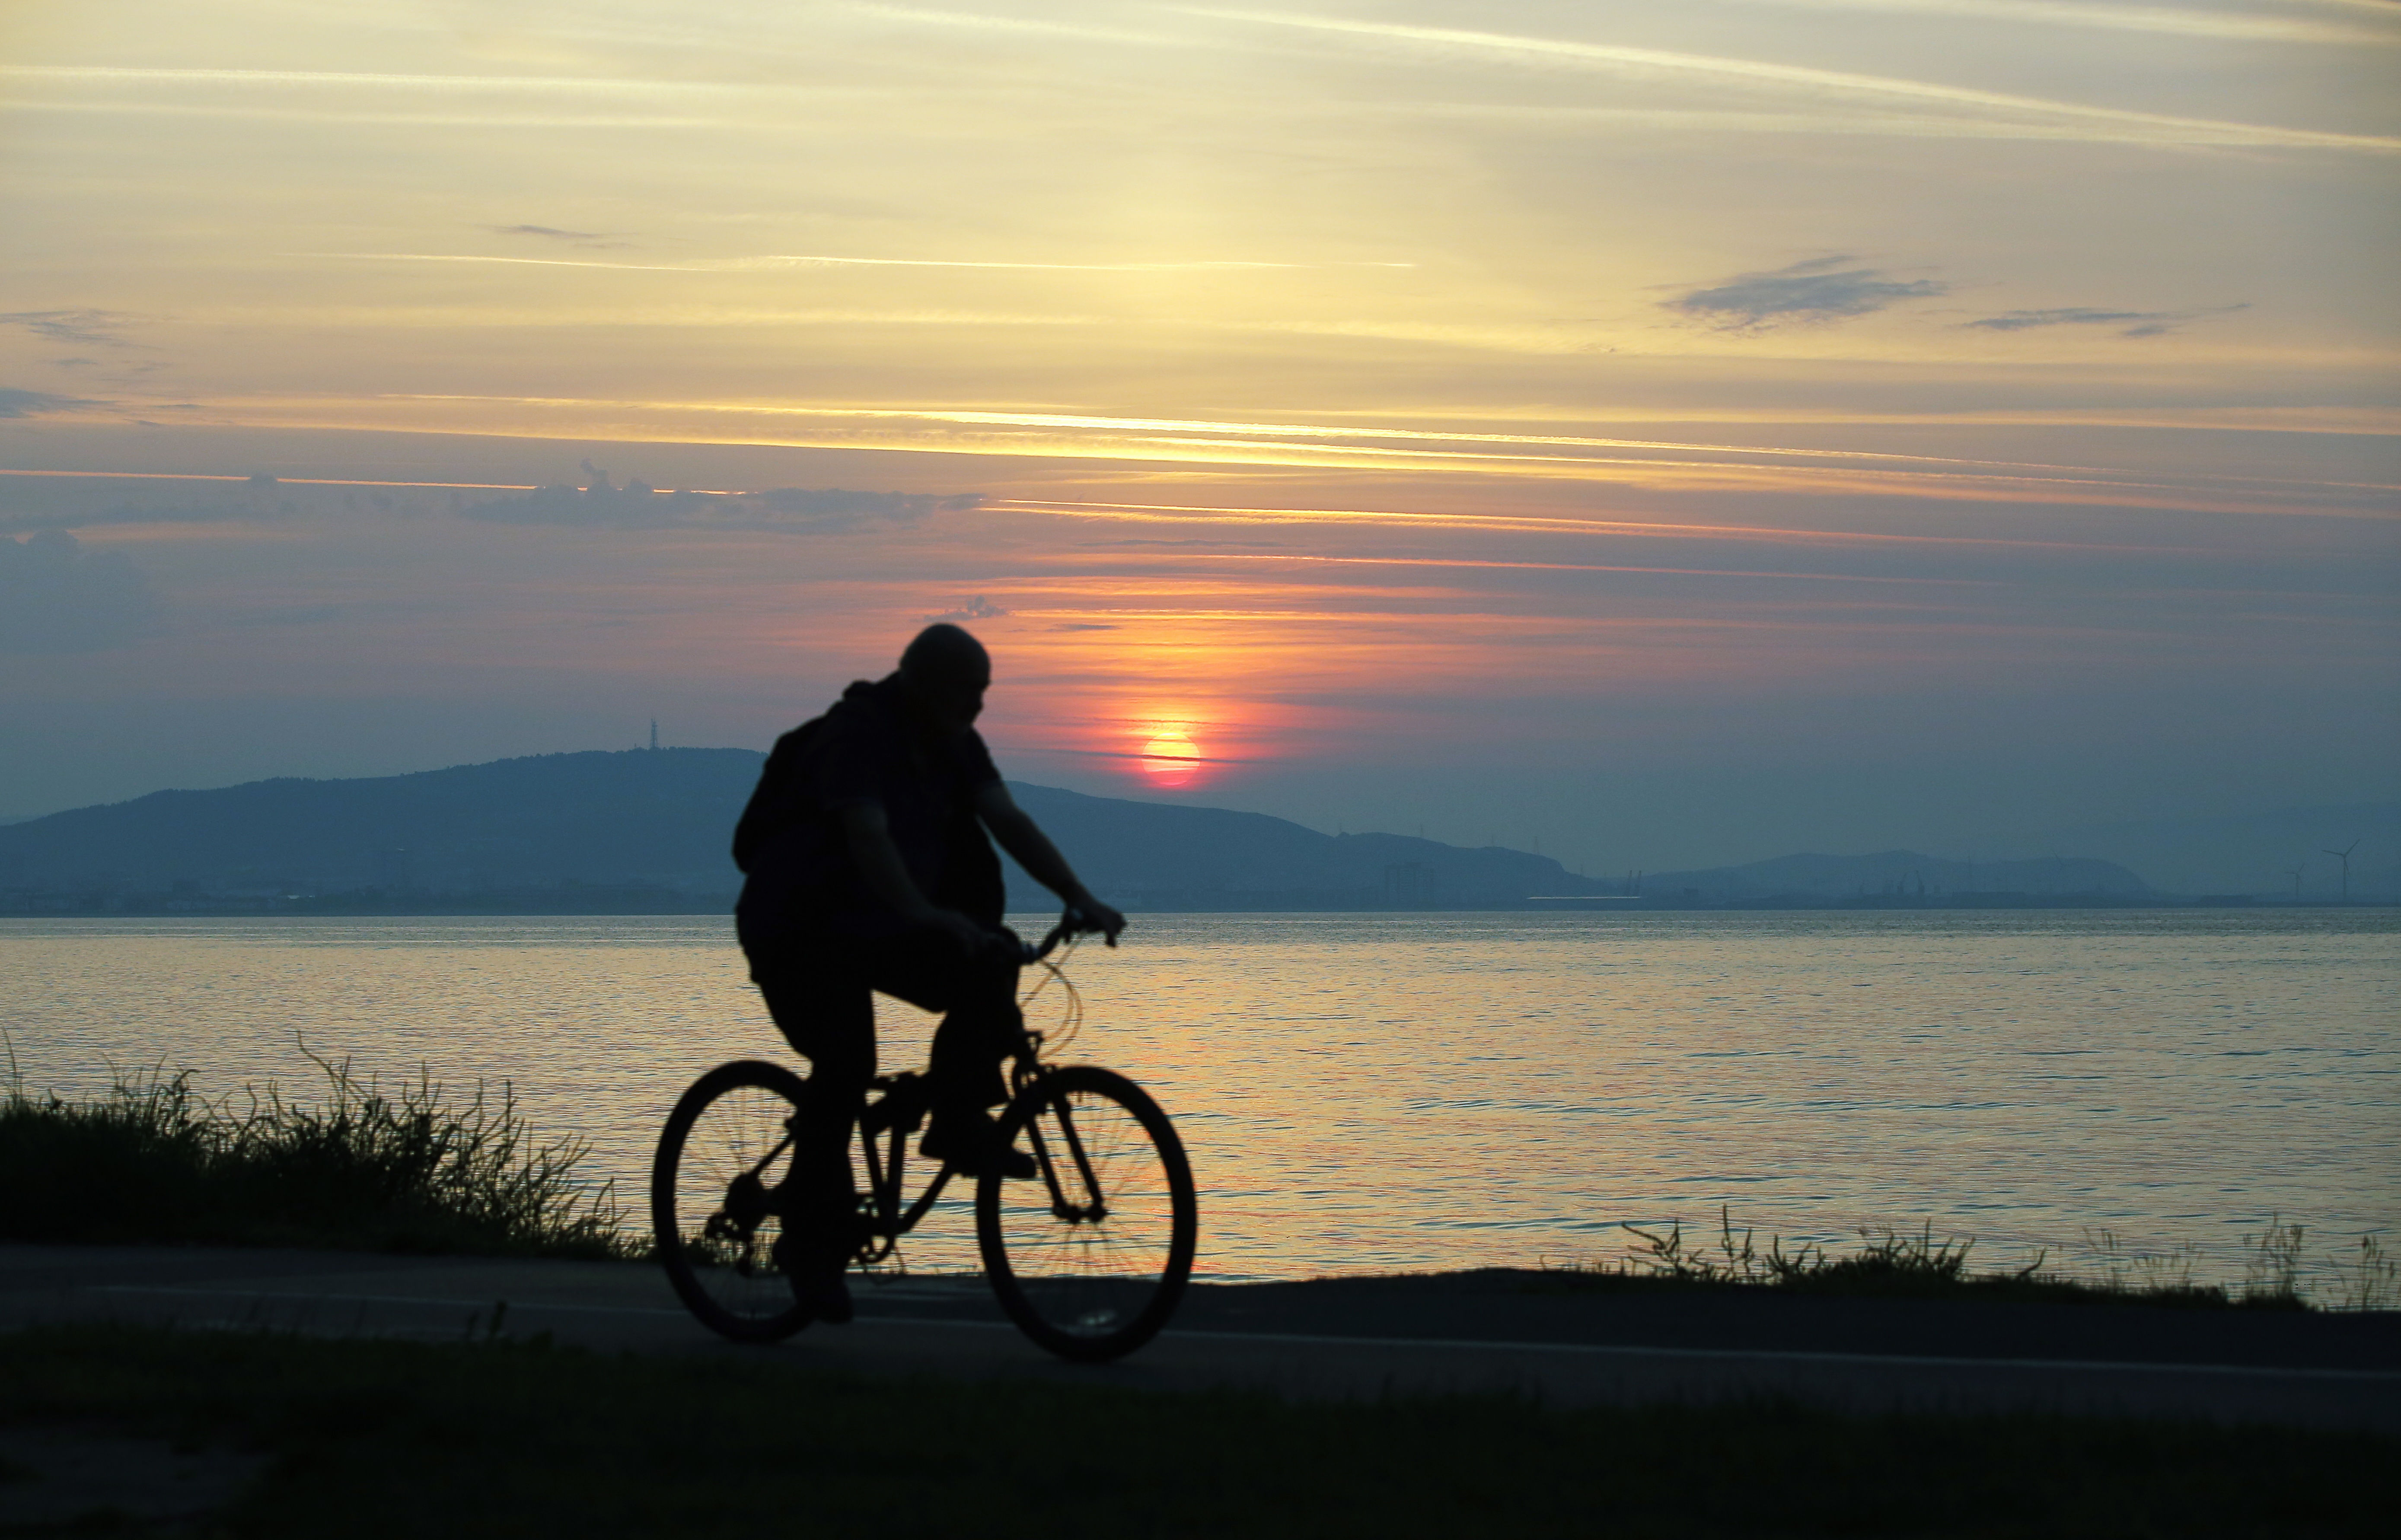 Pictured: A cyclist travels on the Oystermouth path as the sun rises over Kilvey Hill in Swansea, as seen from West Cross in south Wales, UK. Wednesday 21 June 2017 Re: Summer Solstice